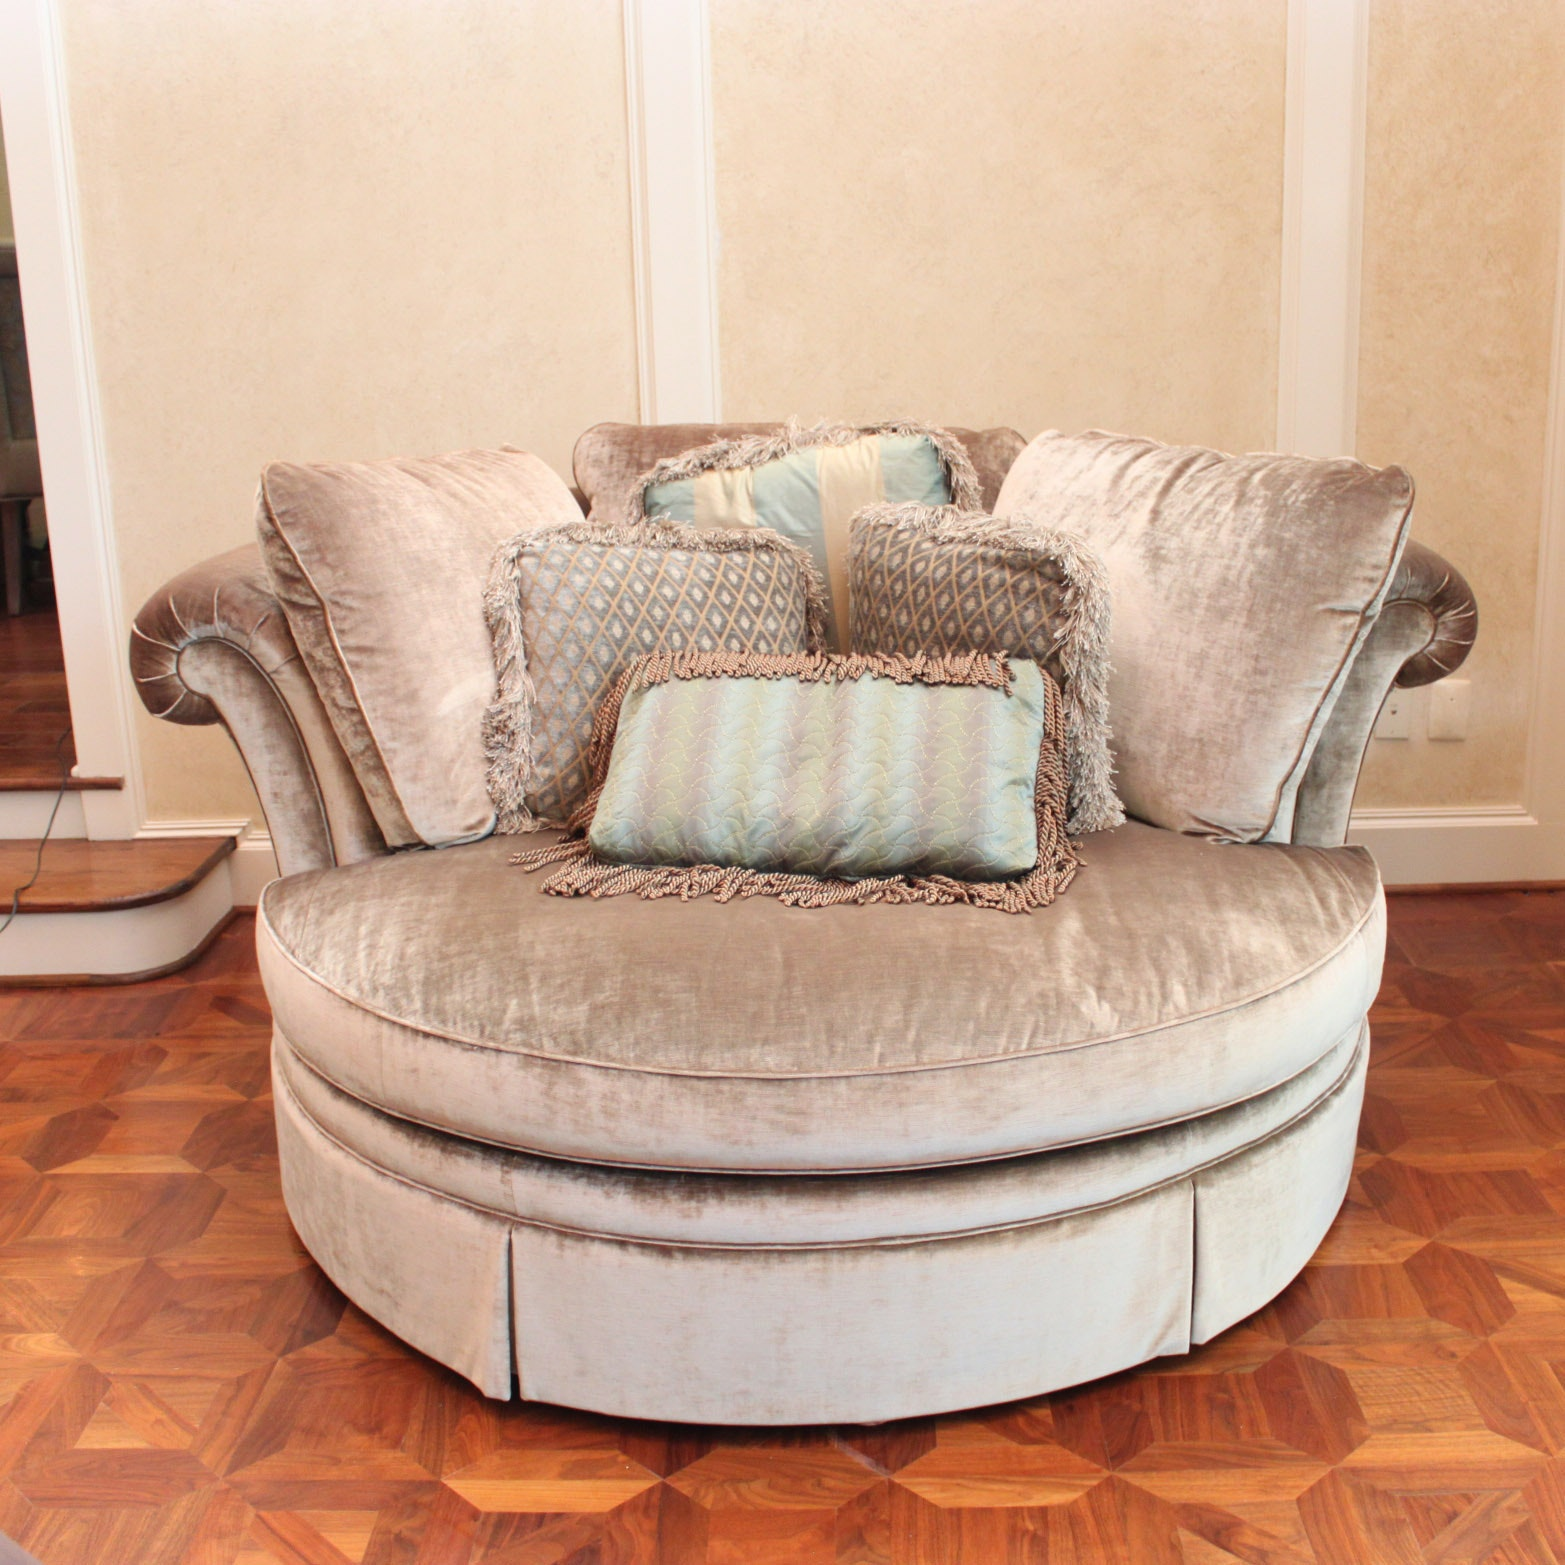 Gentil Round Over Sized Velour Chair By Taylor King